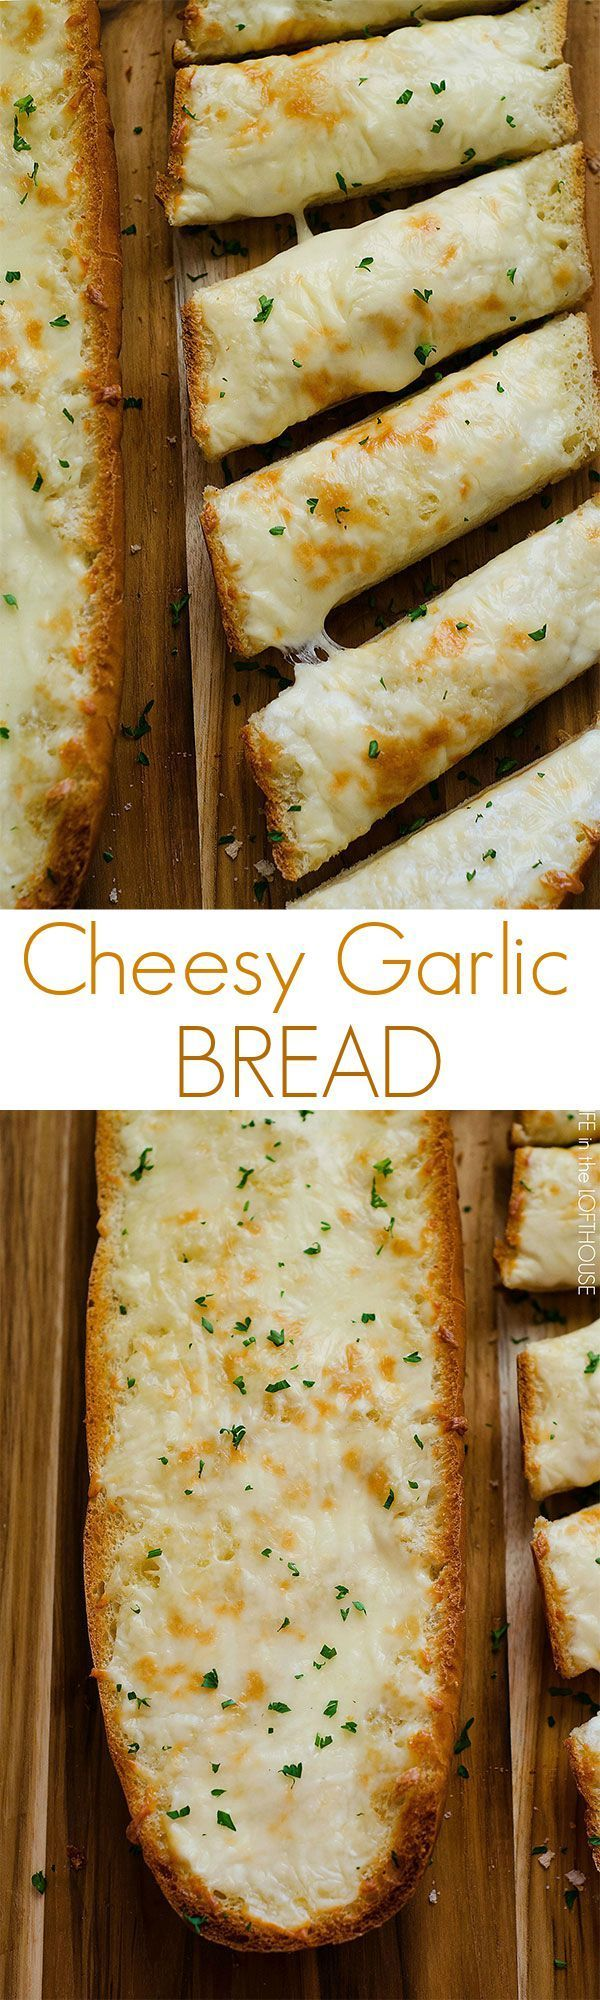 cheesy garlic bread, cheesy bread, french bread